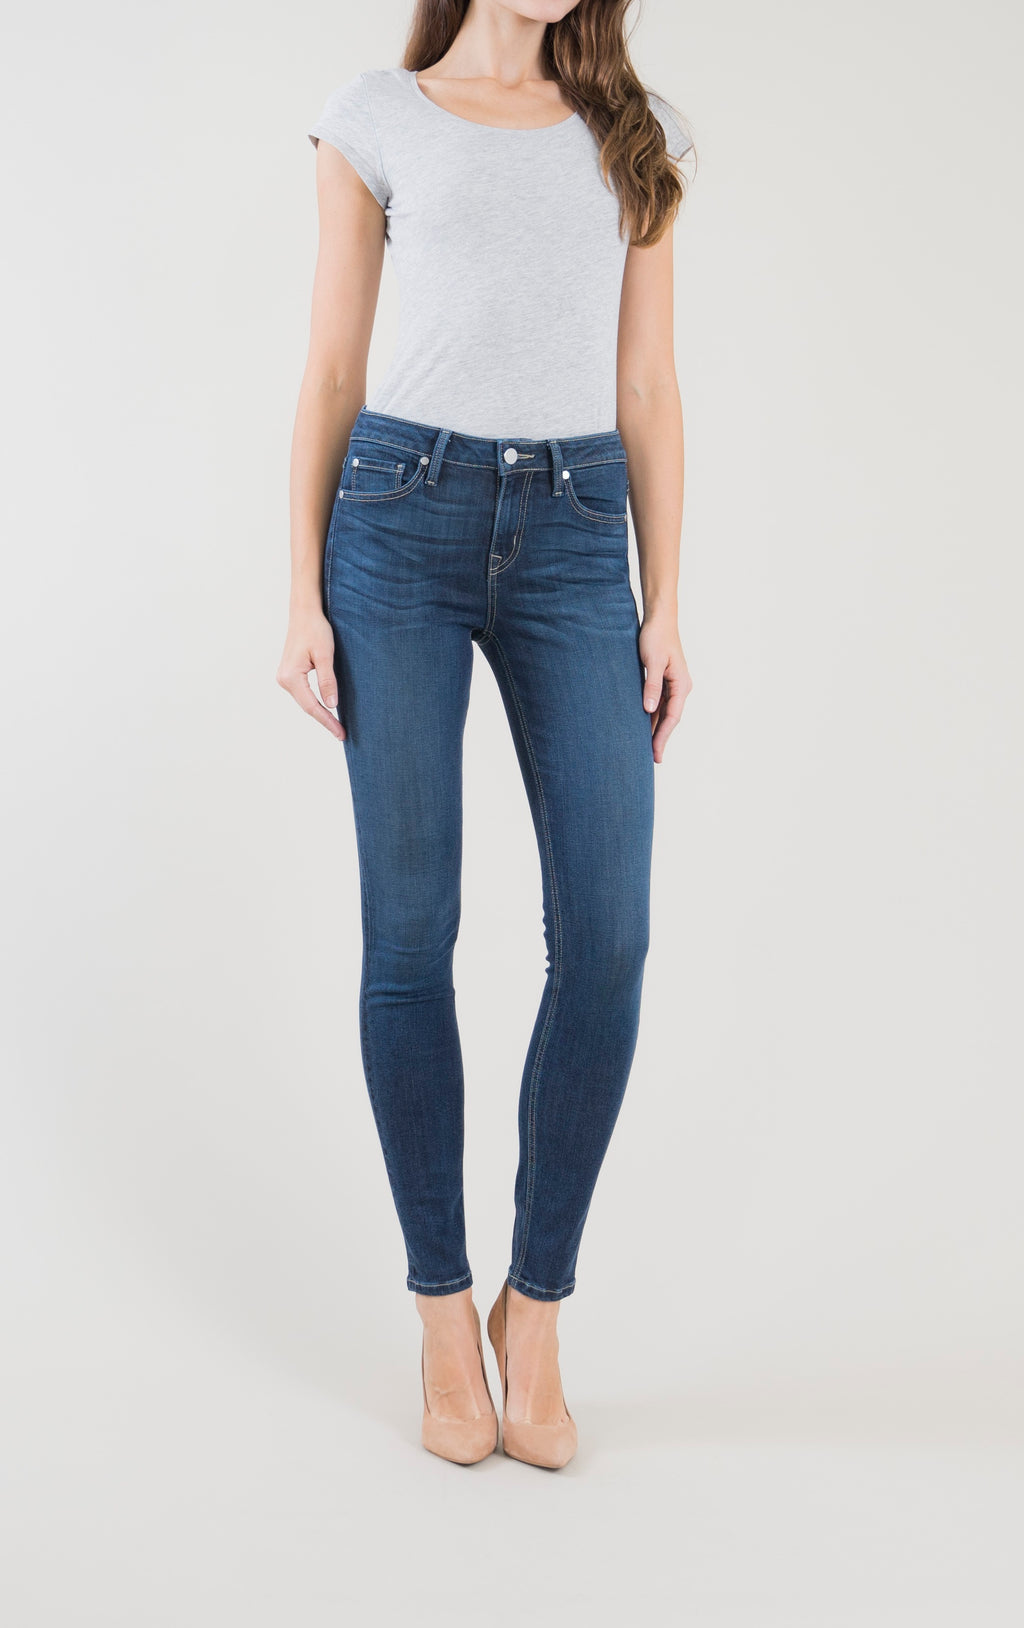 Level 99 Liza Mid Rise Jeans